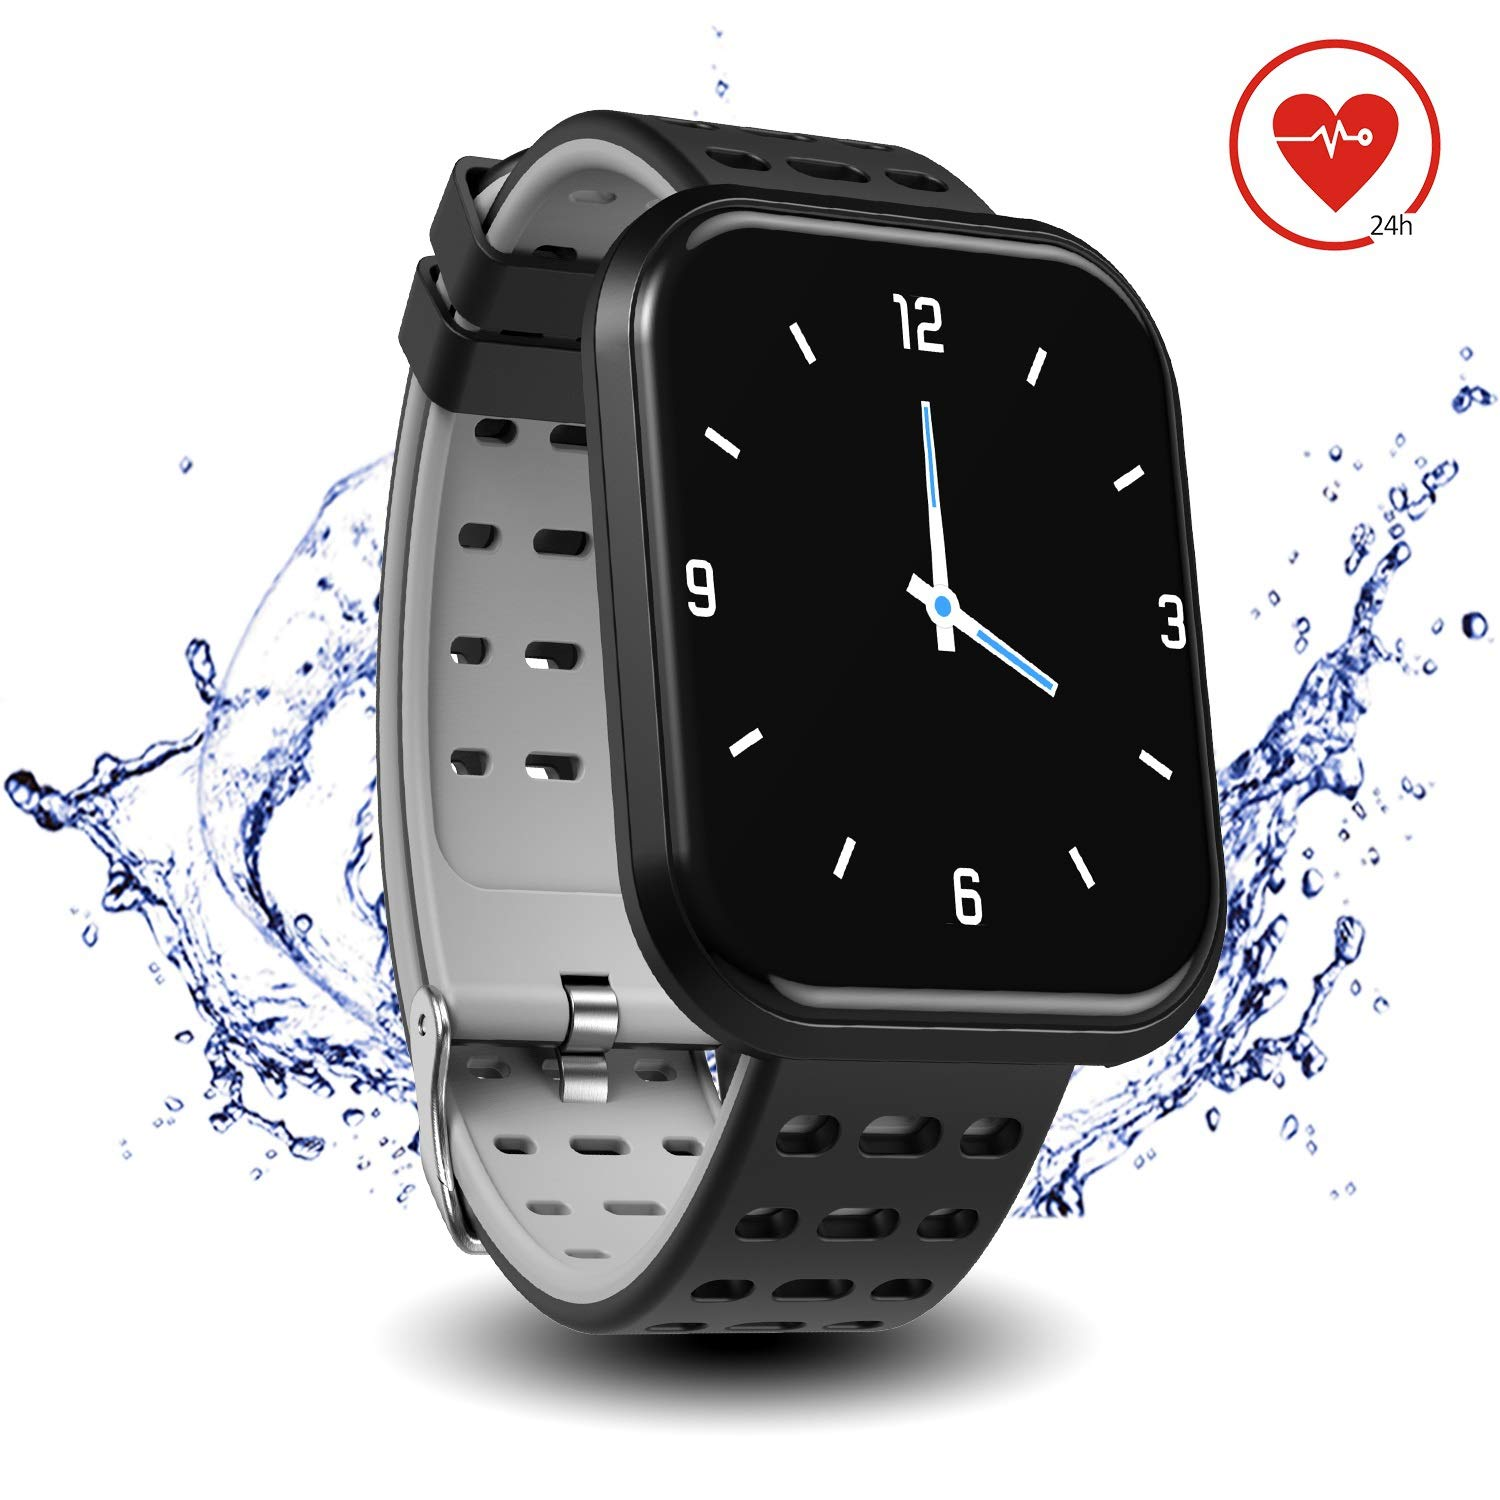 Surpro Smart Watch Heart Rate Monitor, 1.3'' Bright Color Screen Waterproof Pedometer Wrist Watch, Bluetooth Running GPS Fitness Tracker Watch for Android & iOS Phones, Grey